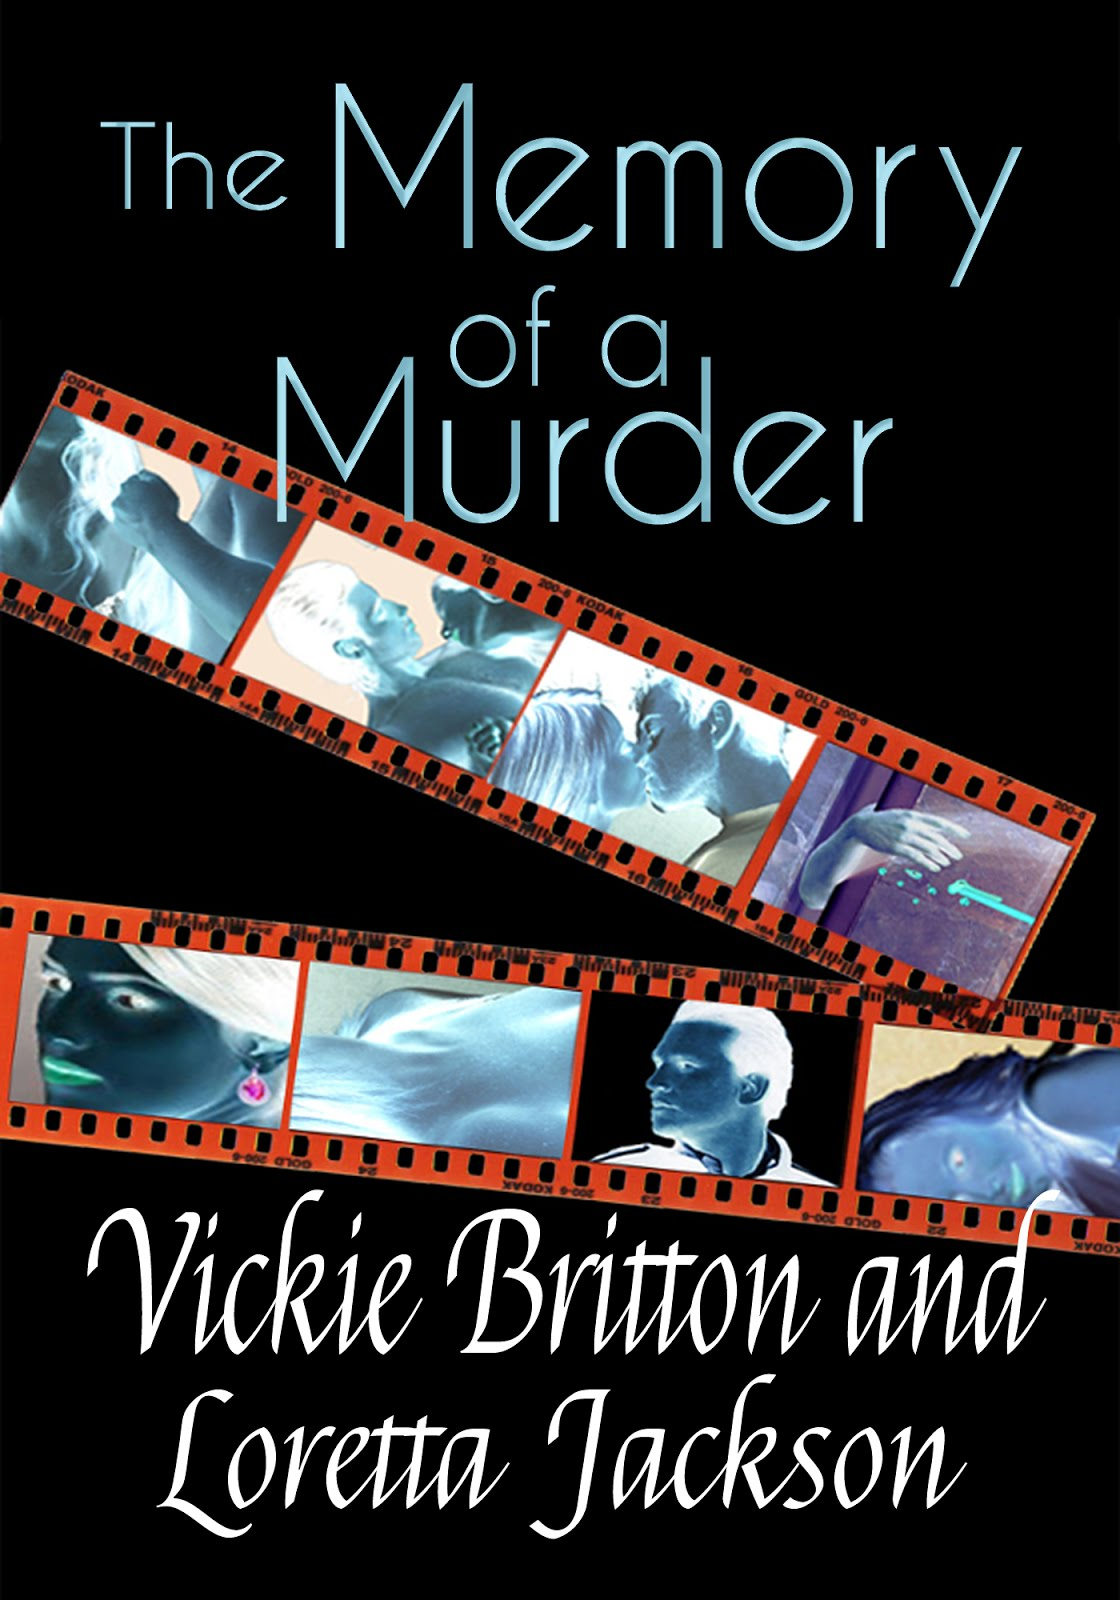 99c  THE MEMORY OF A MURDER A short mystery romance